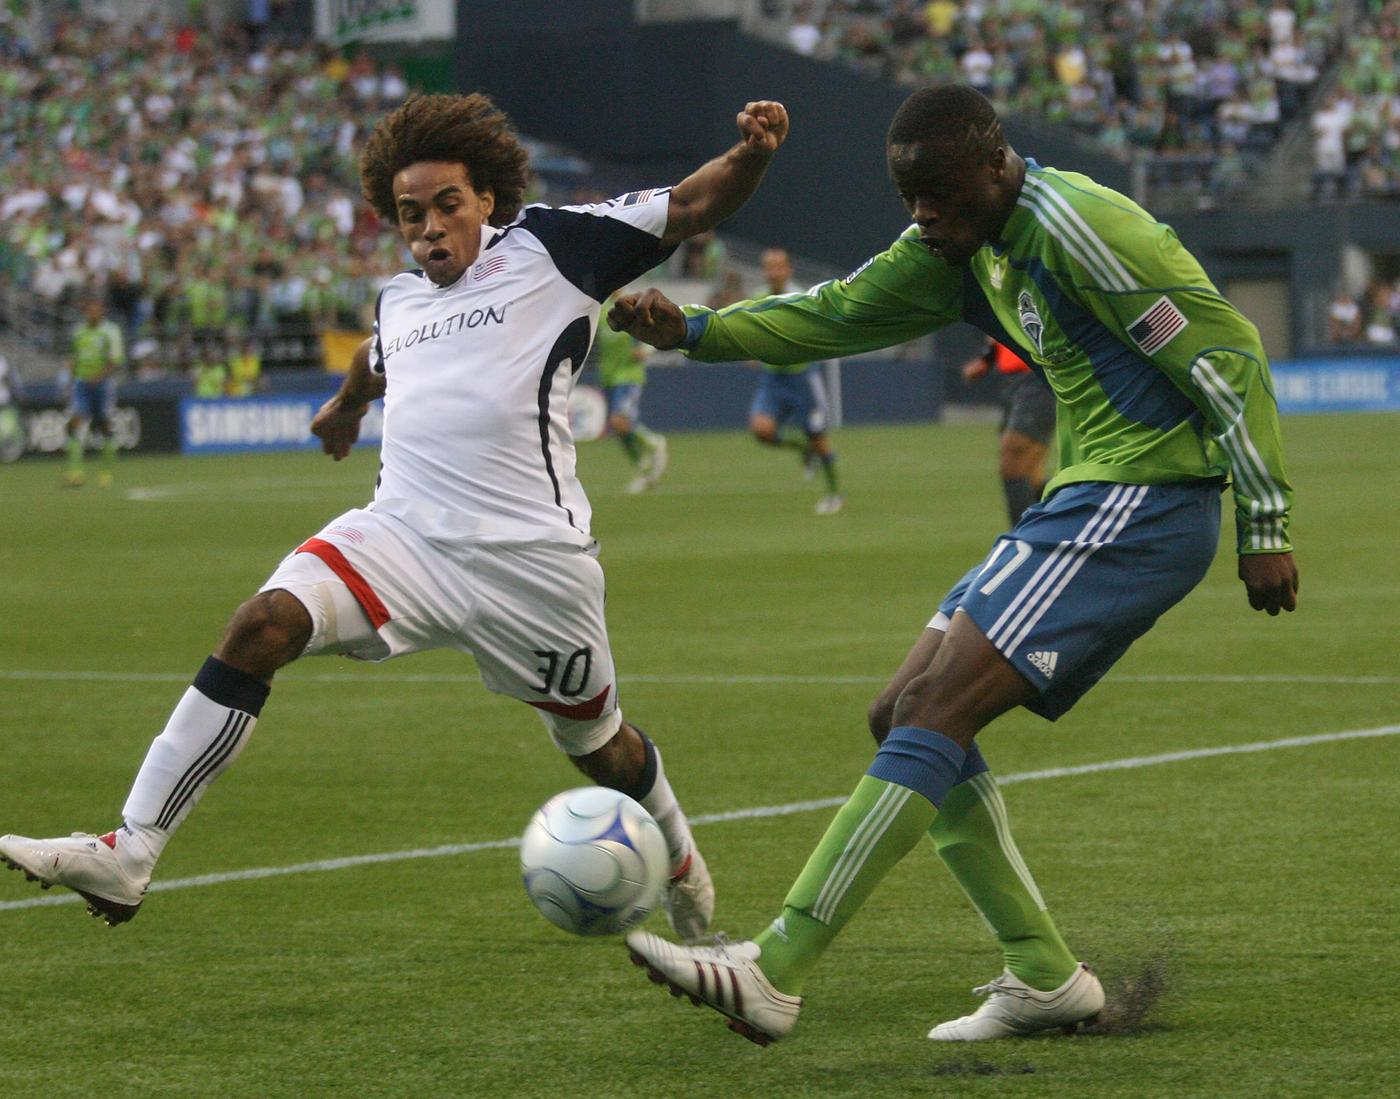 Sounders present last hurdle before break